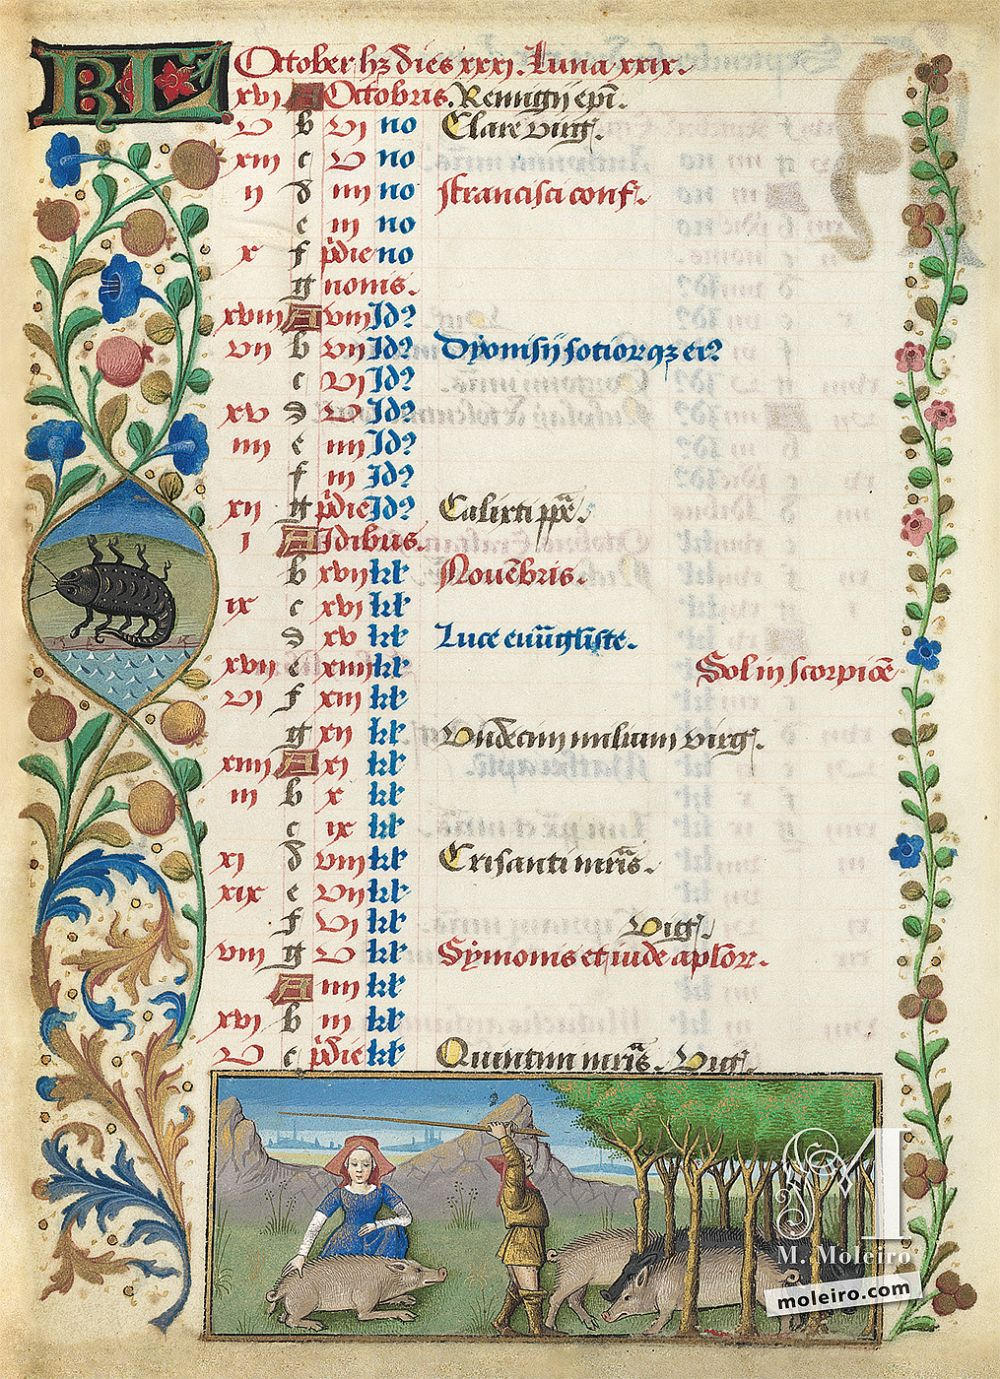 The Hours of Charles of Angoulême Calendar: October (f. 5v)